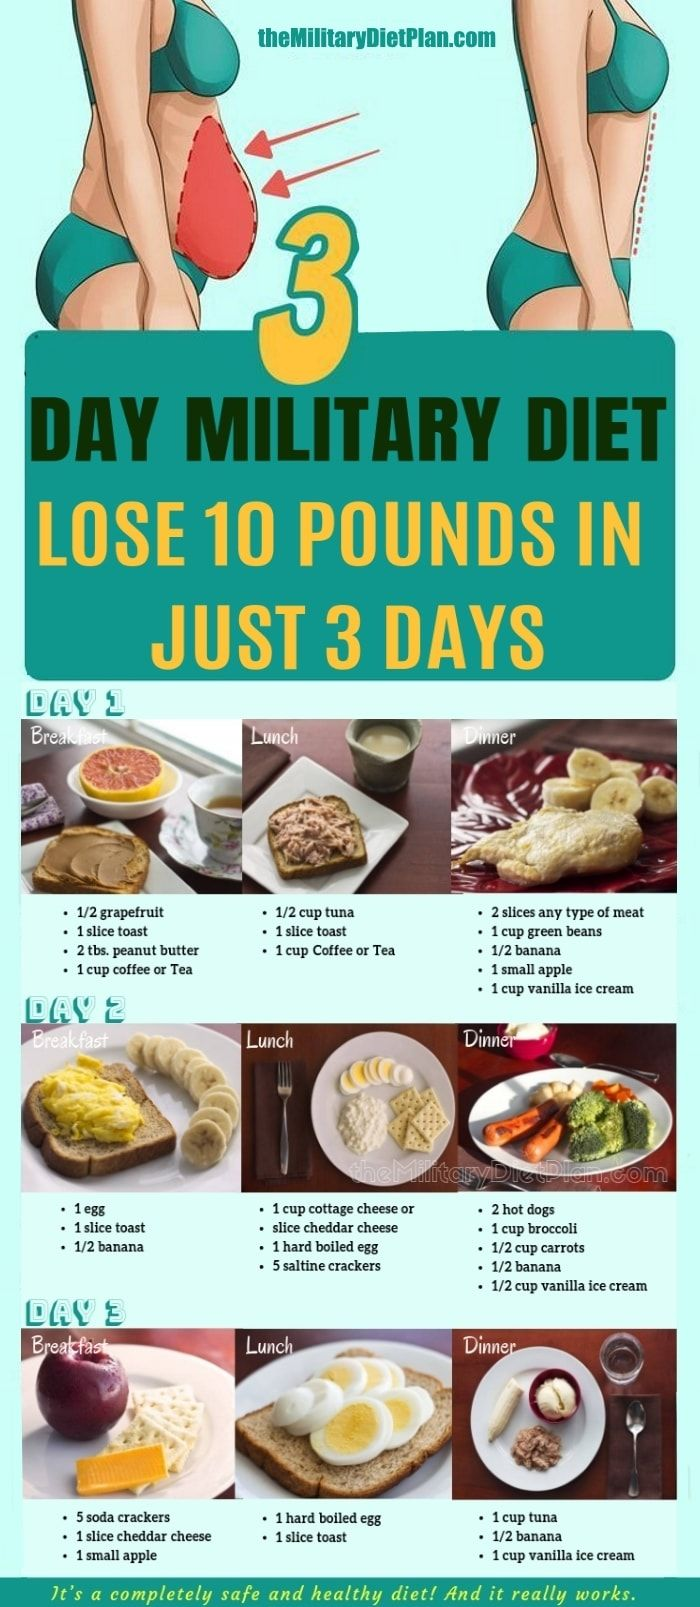 3 Day Military Diet To Lose 10 Pounds In 3 Day Diet Loss Military Diet Effective Diet